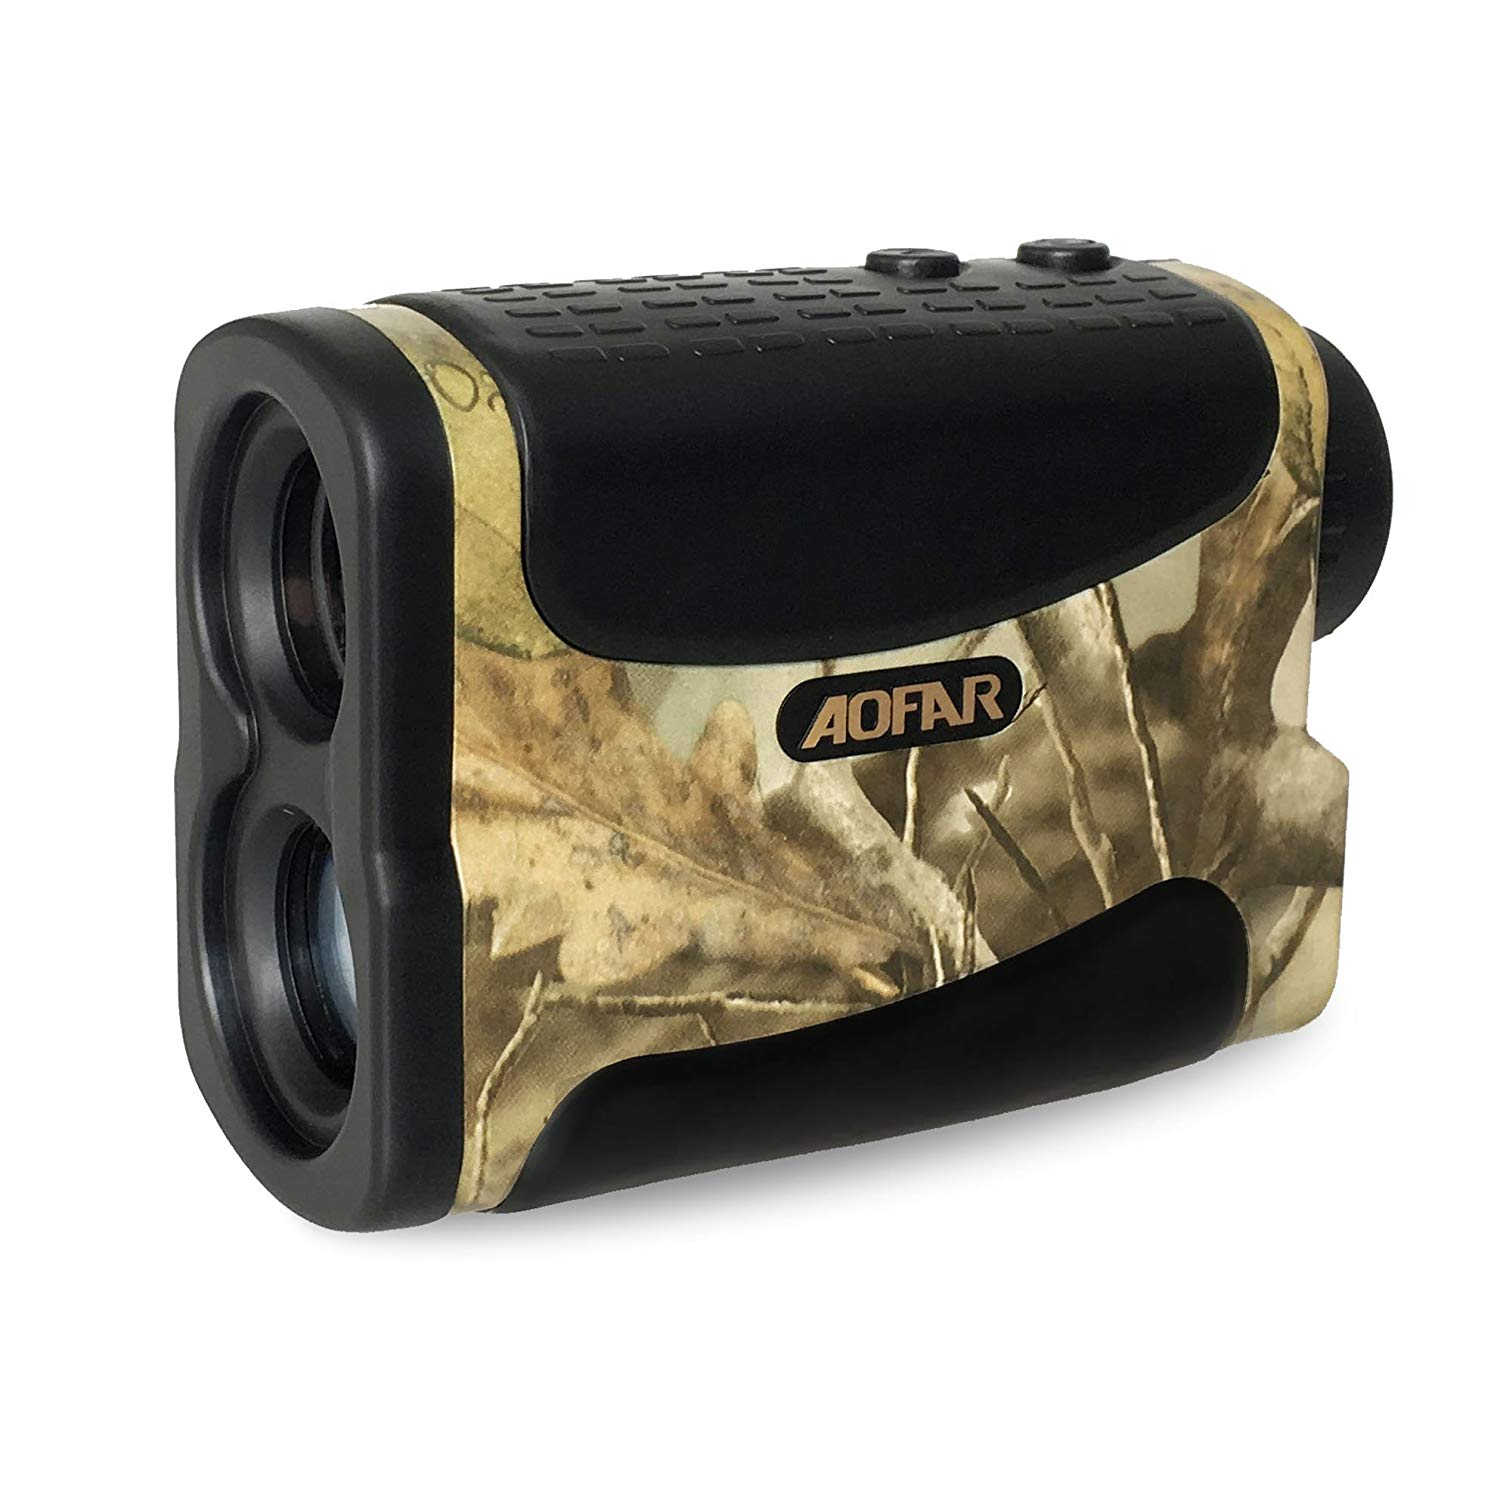 AOFAR Range Finder 1000 Yards Waterproof for Hunting Golf, 6X 25mm Measurer Laser Rangefinder with Speed Scan and Fog, Free Battery